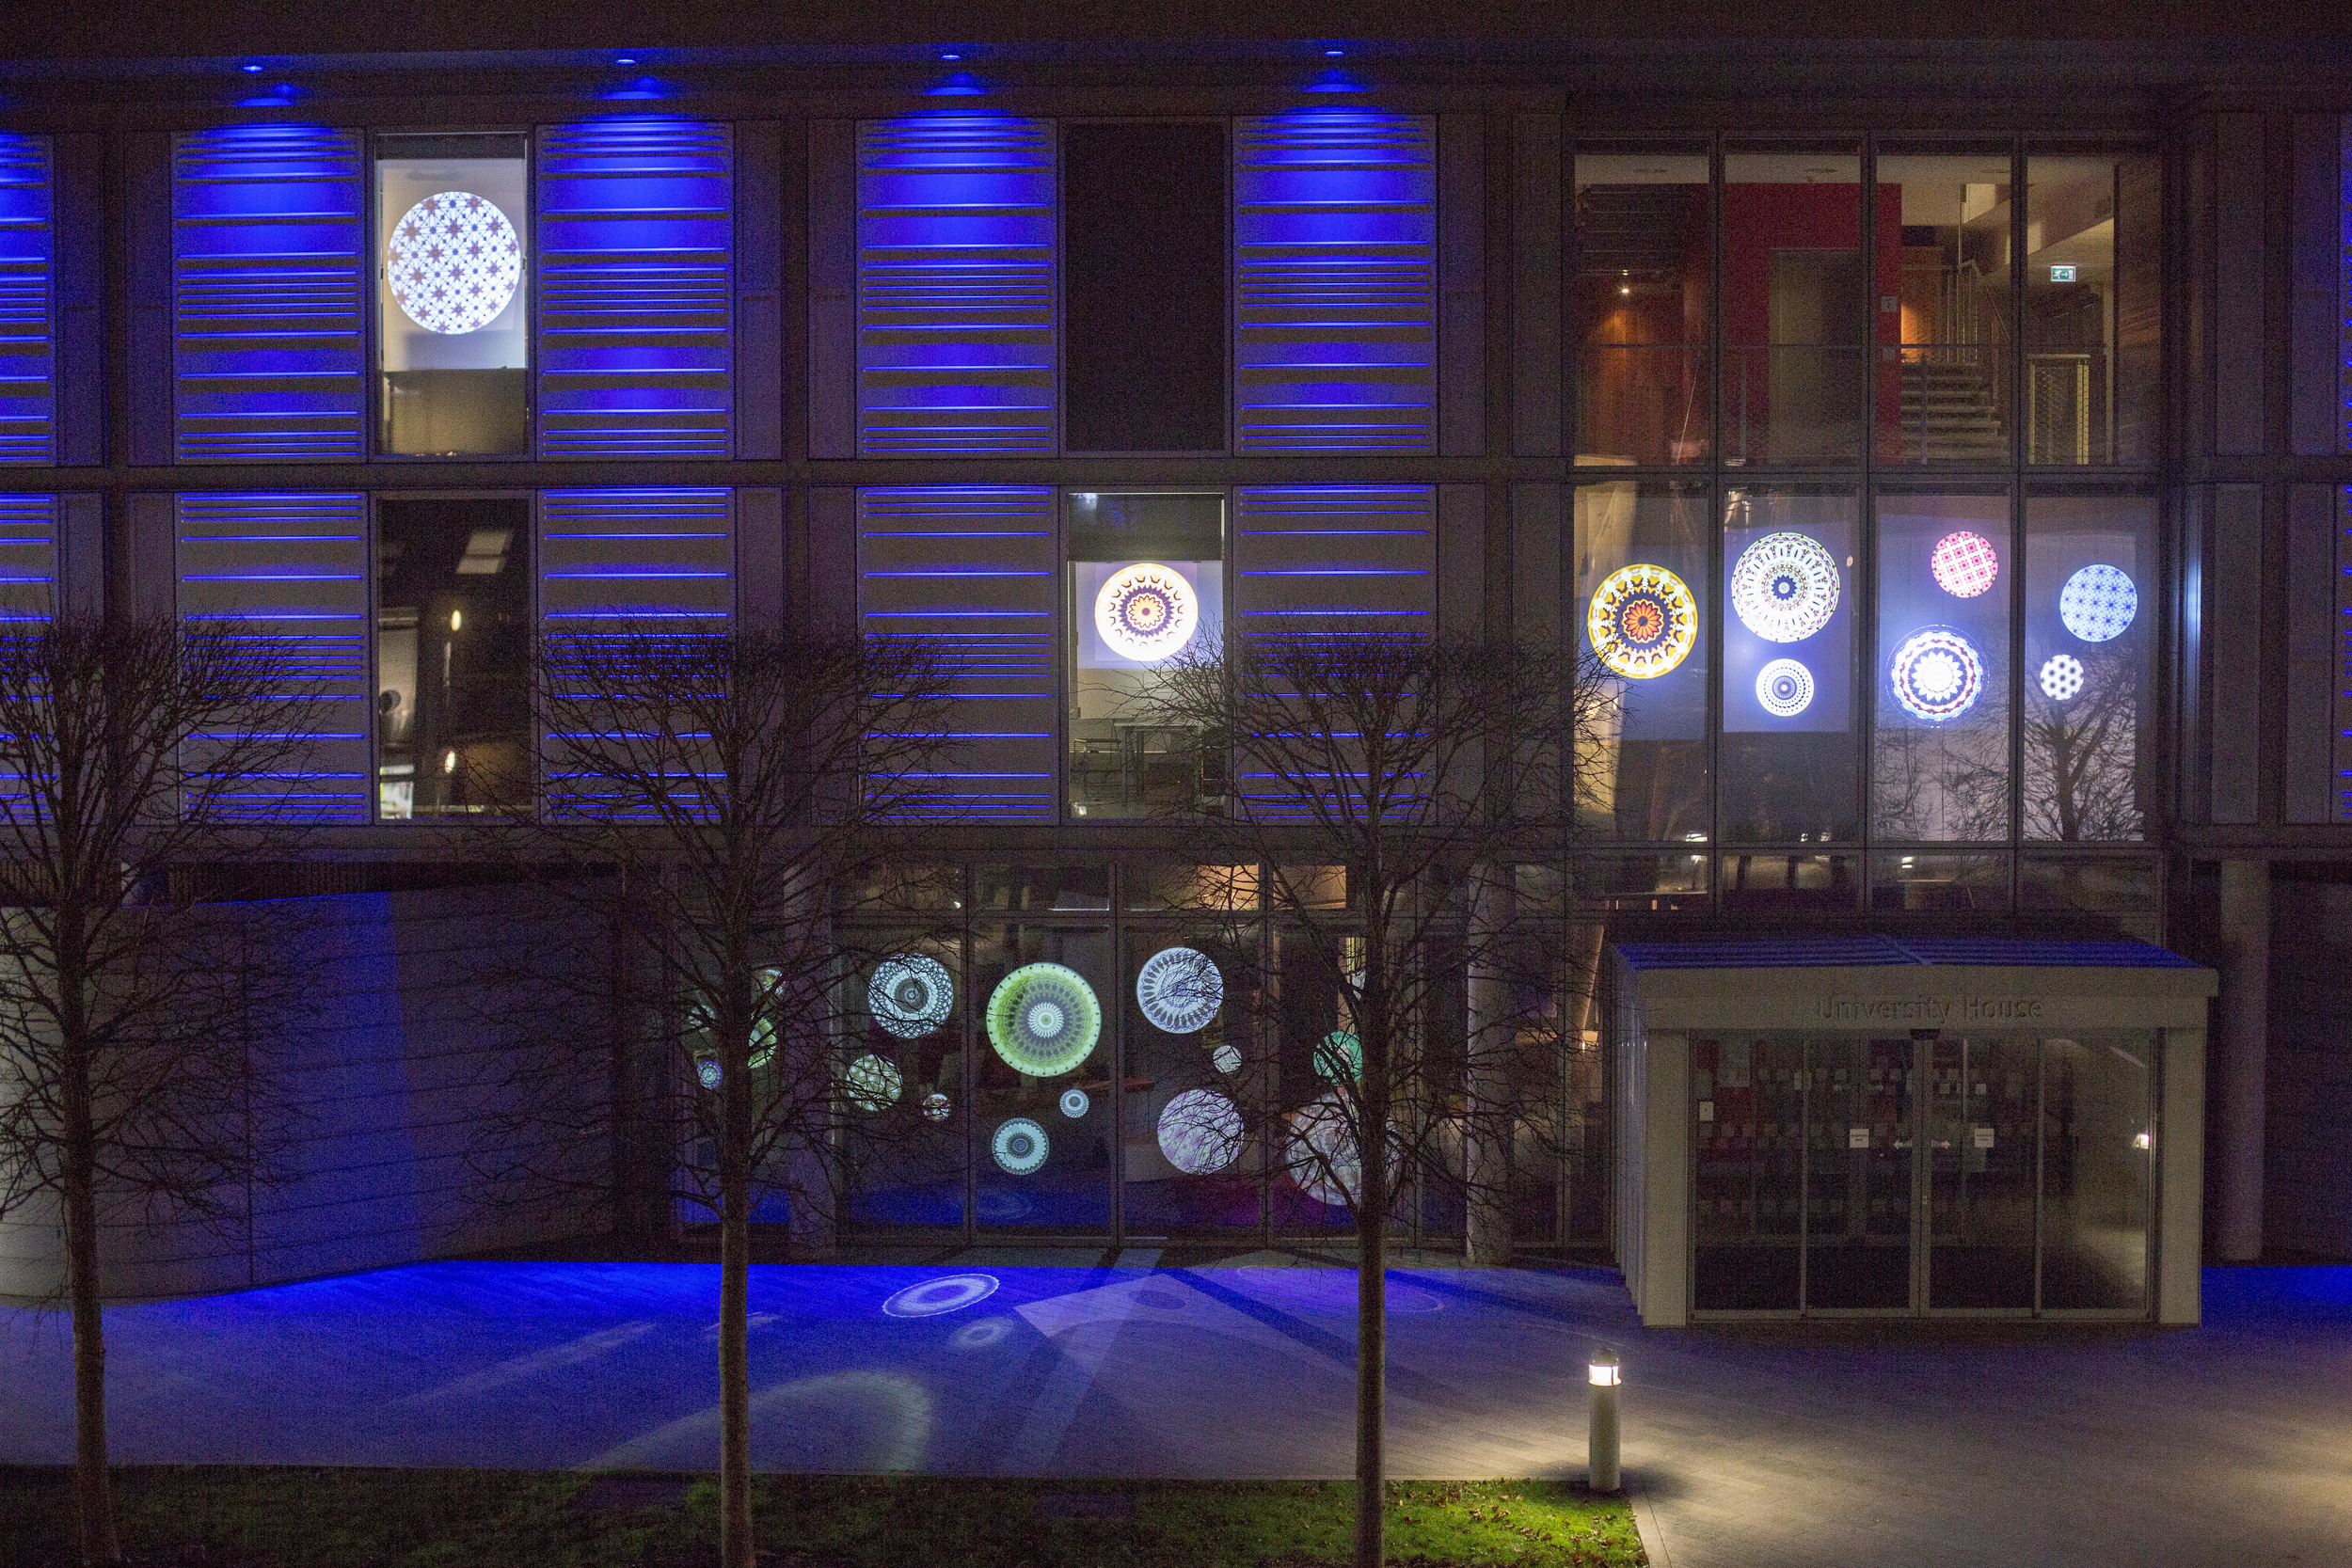 Video mapping on building's windows, 2014.